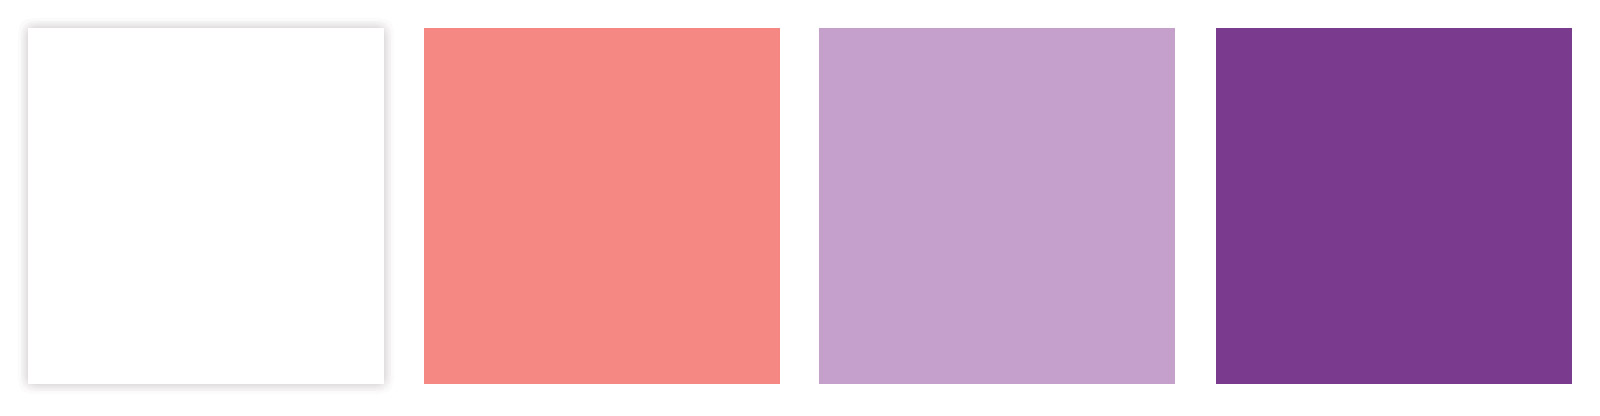 HPWC Colour Palette